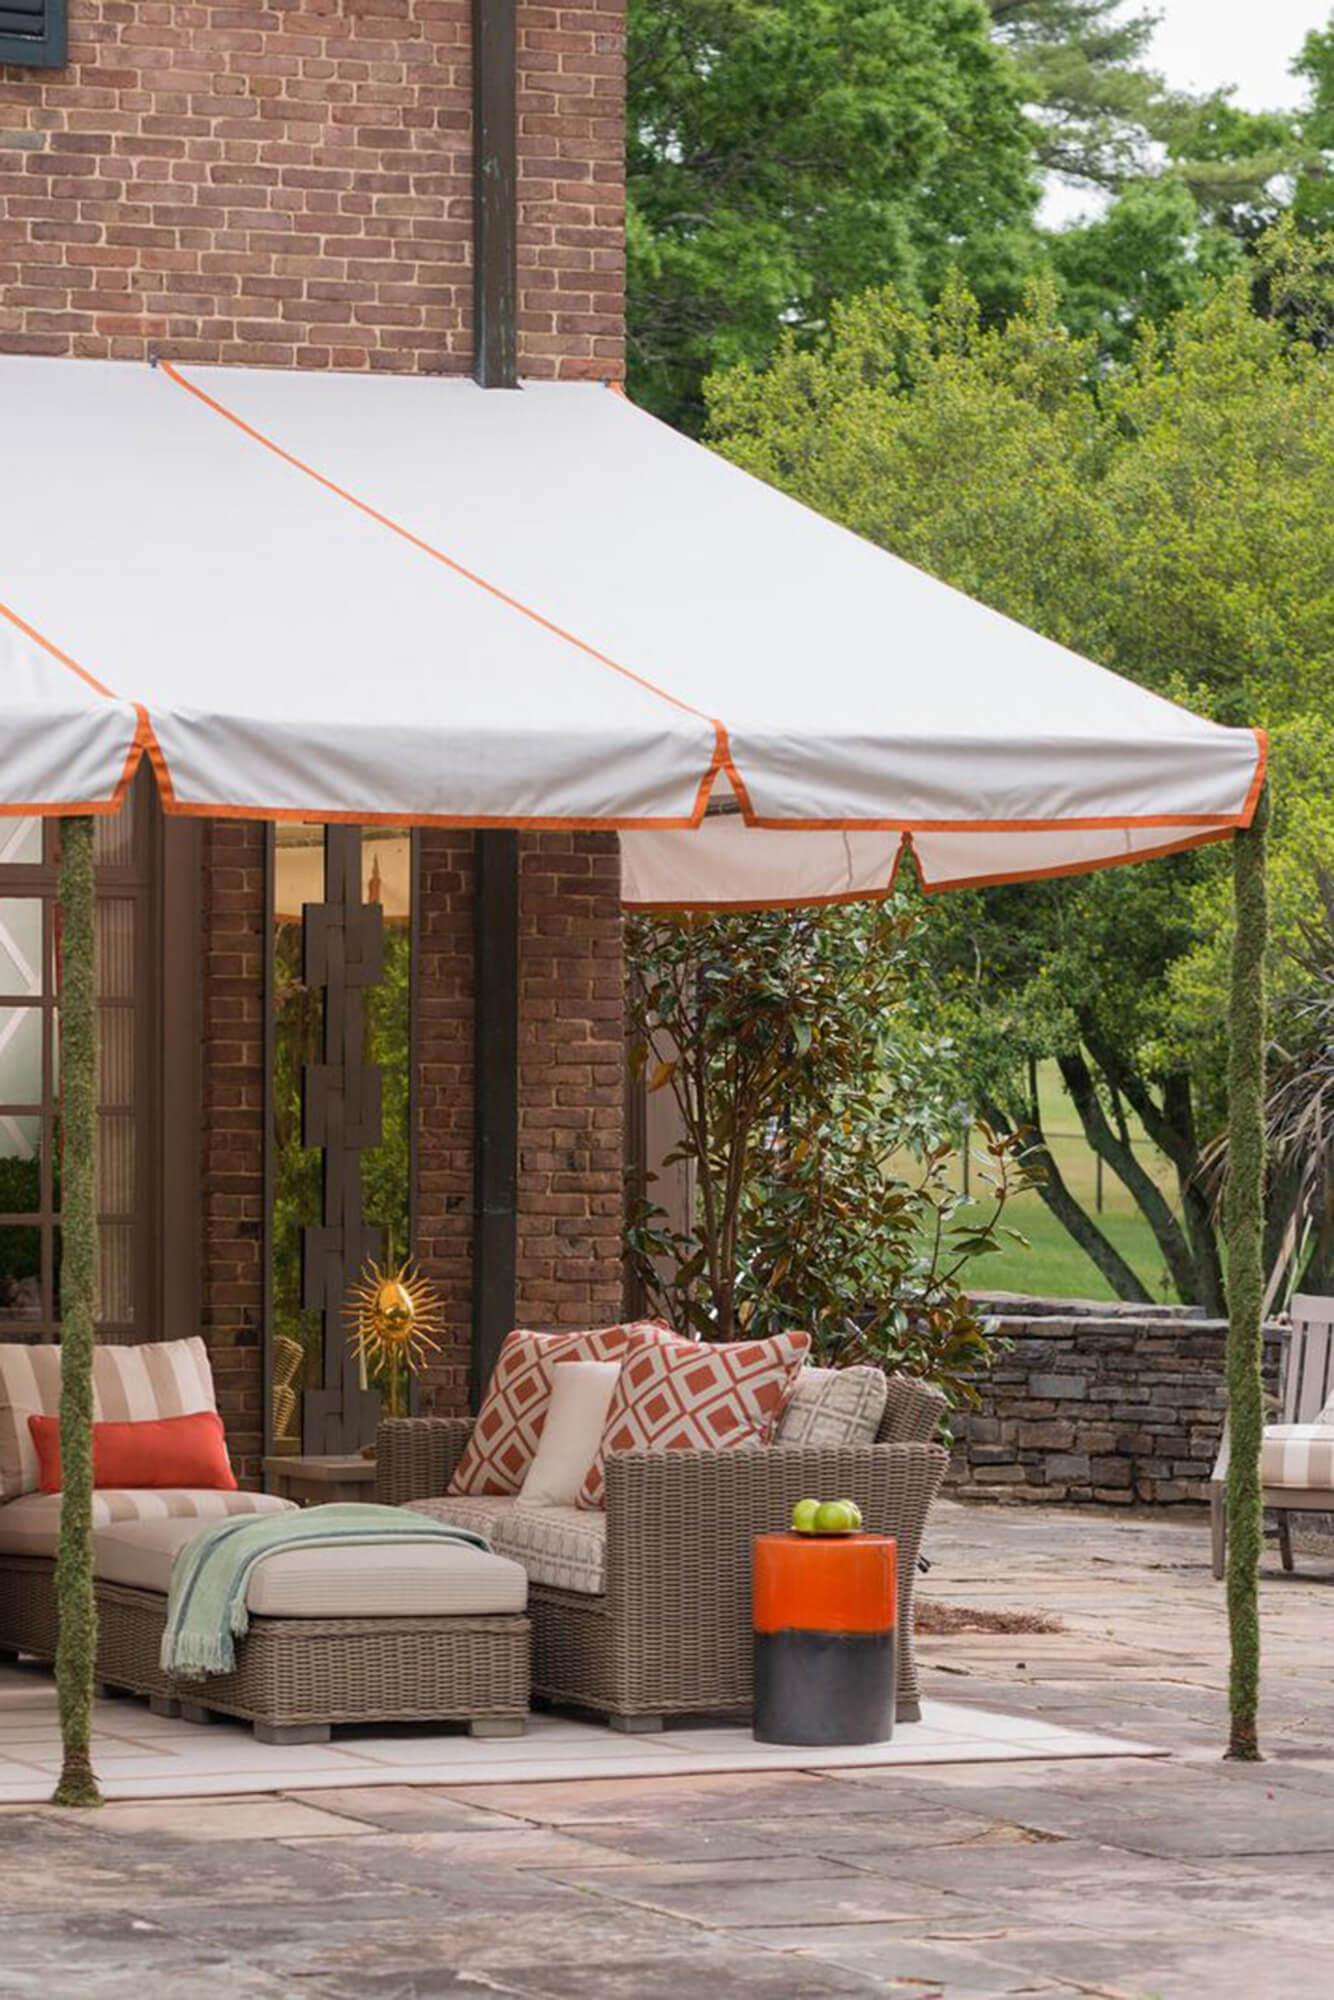 residential shade fabrics - sunbrella fabrics - Cheap Patio Shade Ideas